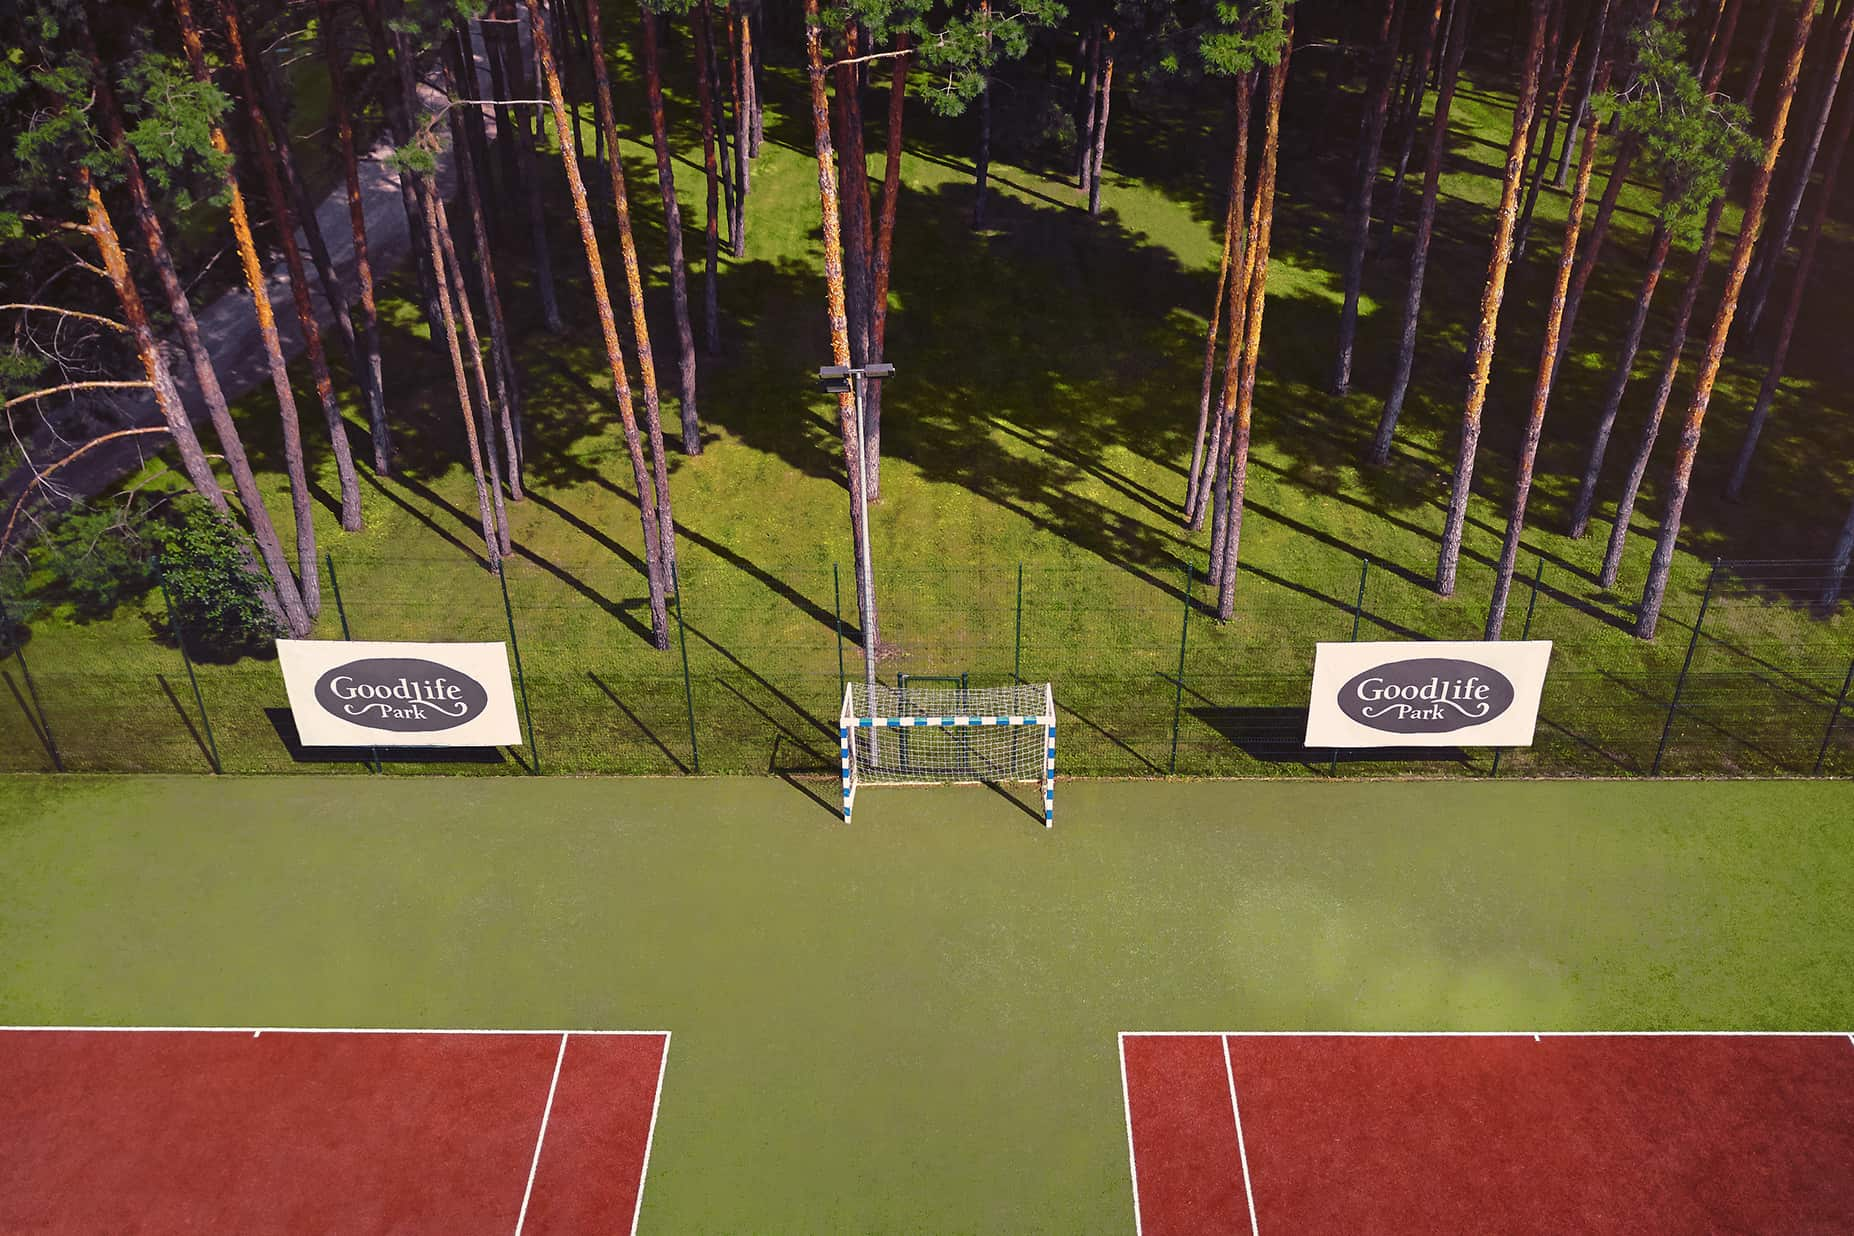 GoodLife Park tennis court